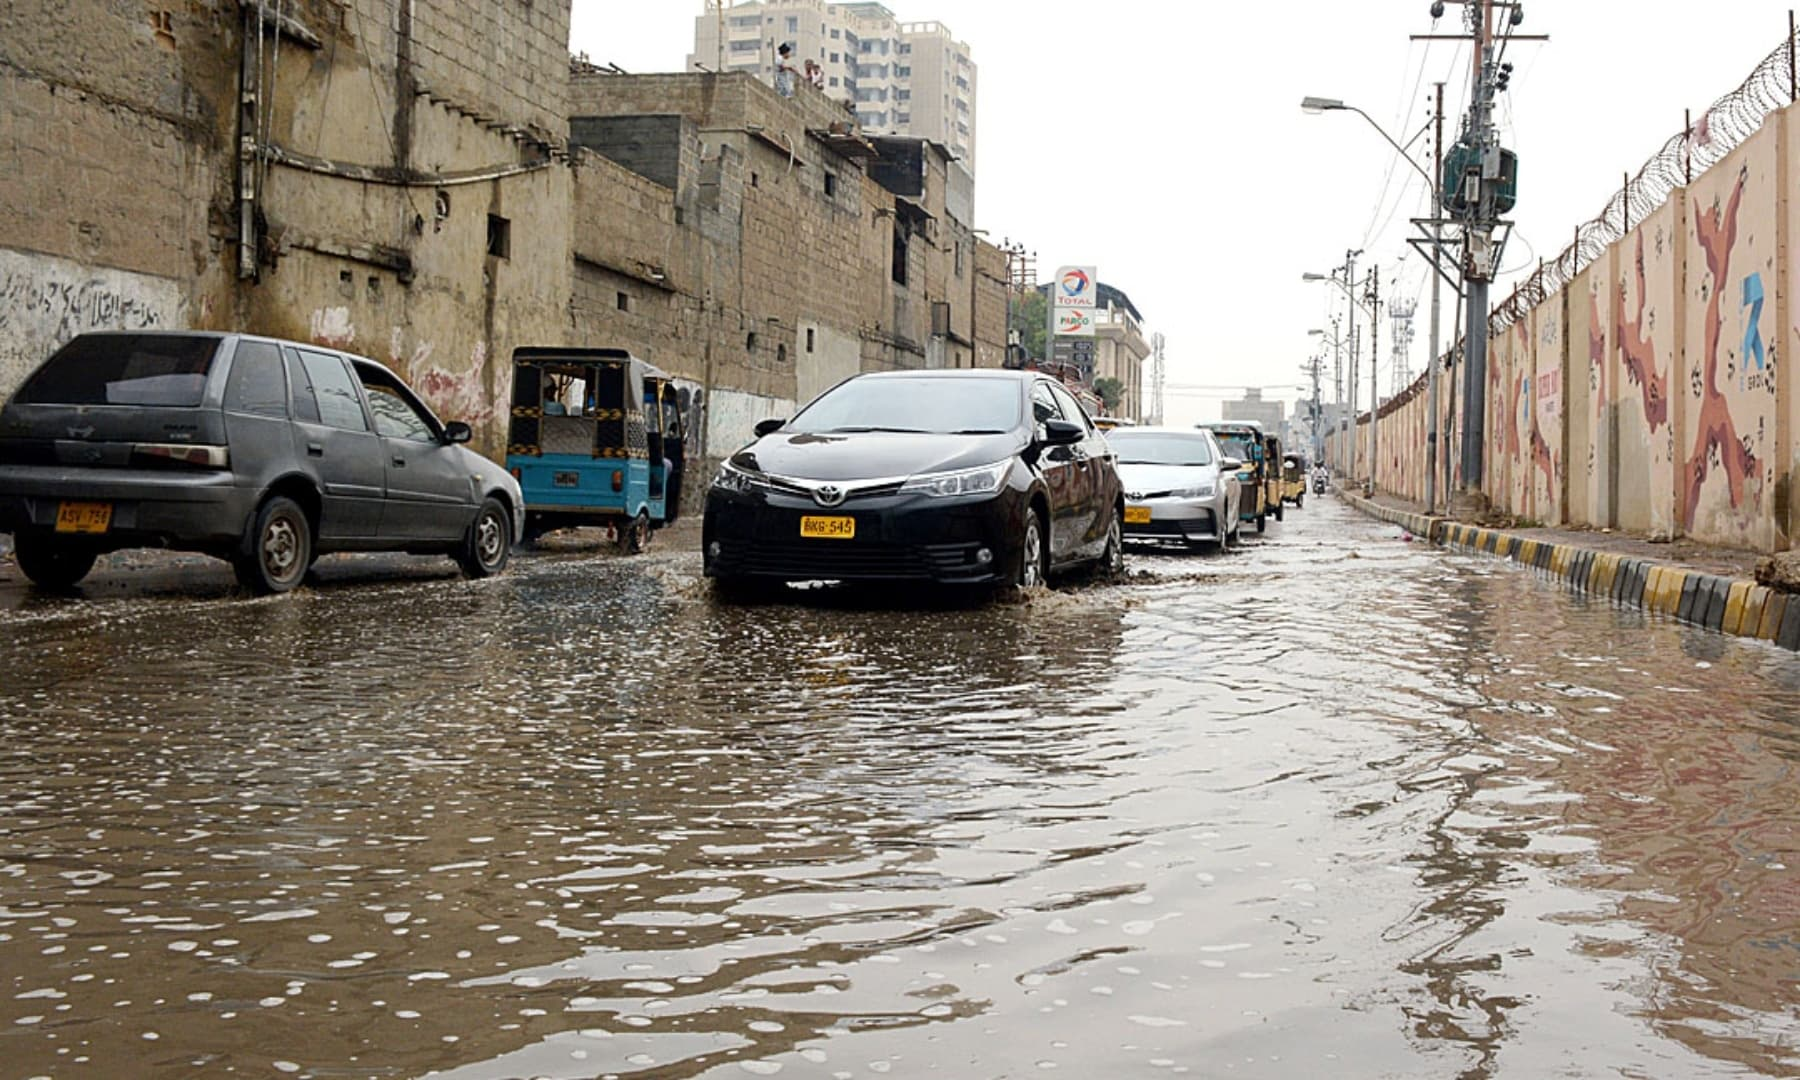 Vehicles pass through stagnant water accumulated near Kala Pul after rain in Karachi. — APP